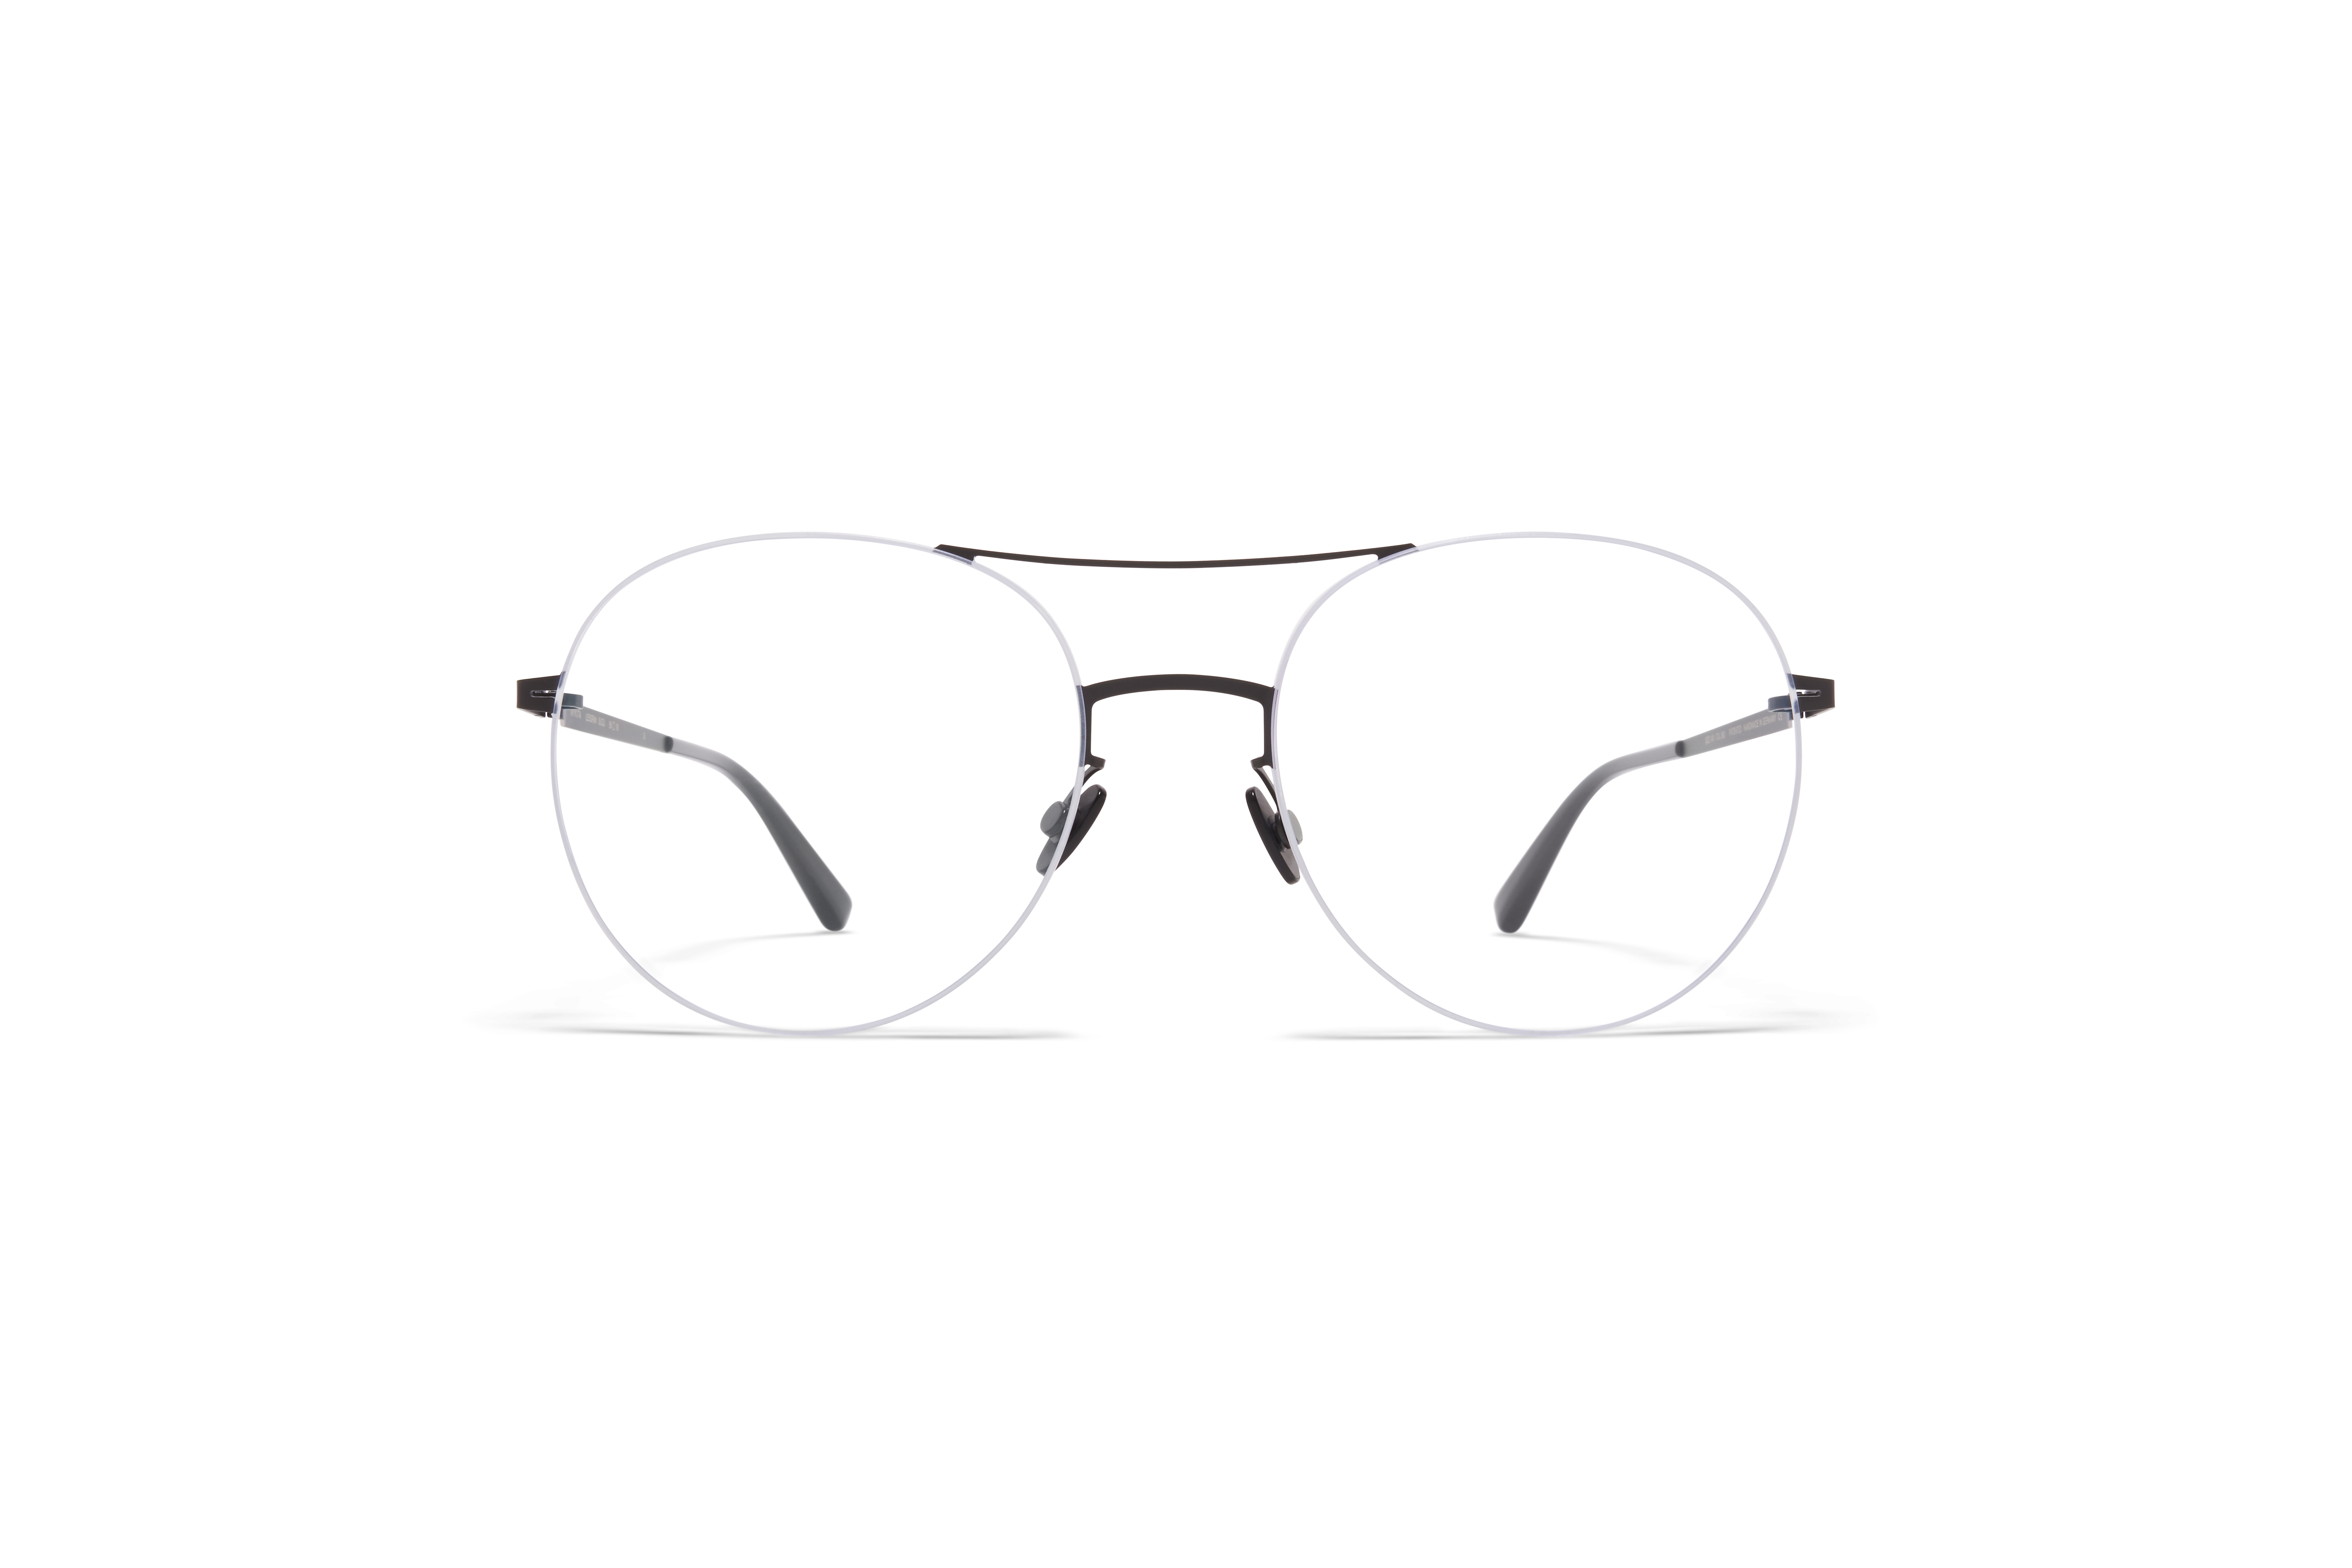 MYKITA Less Rim Rx Suzu Black White Clear